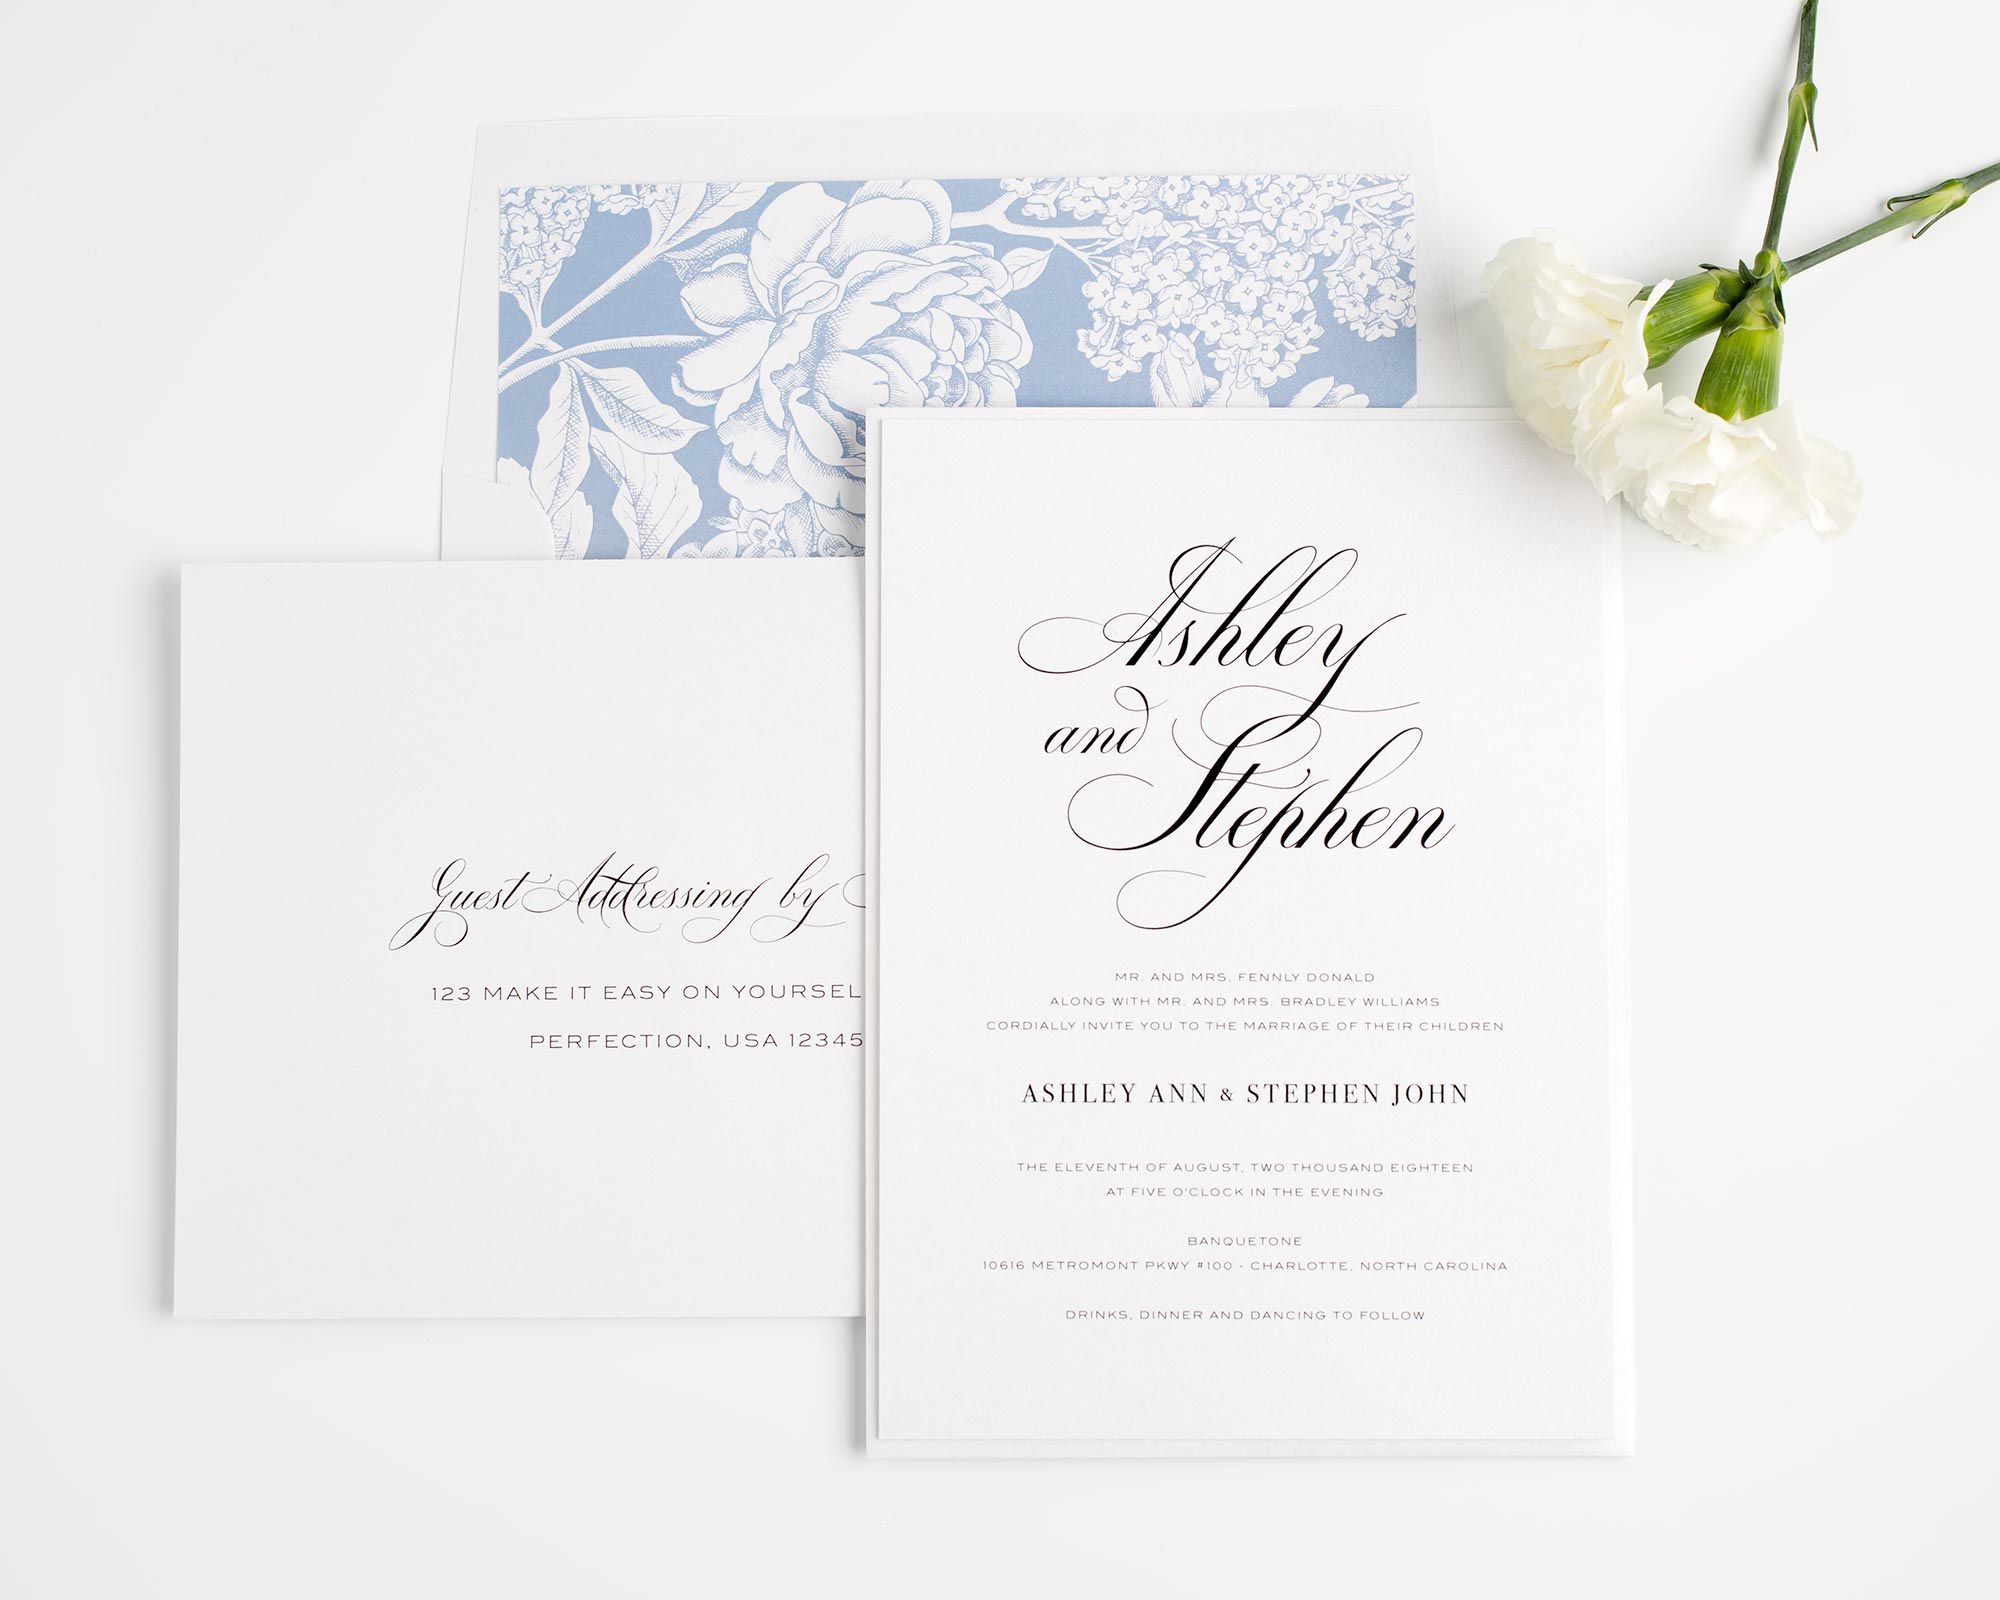 Calligraphy Wedding Invitations In Serenity Blue With Fl Accents Clic And Elegant